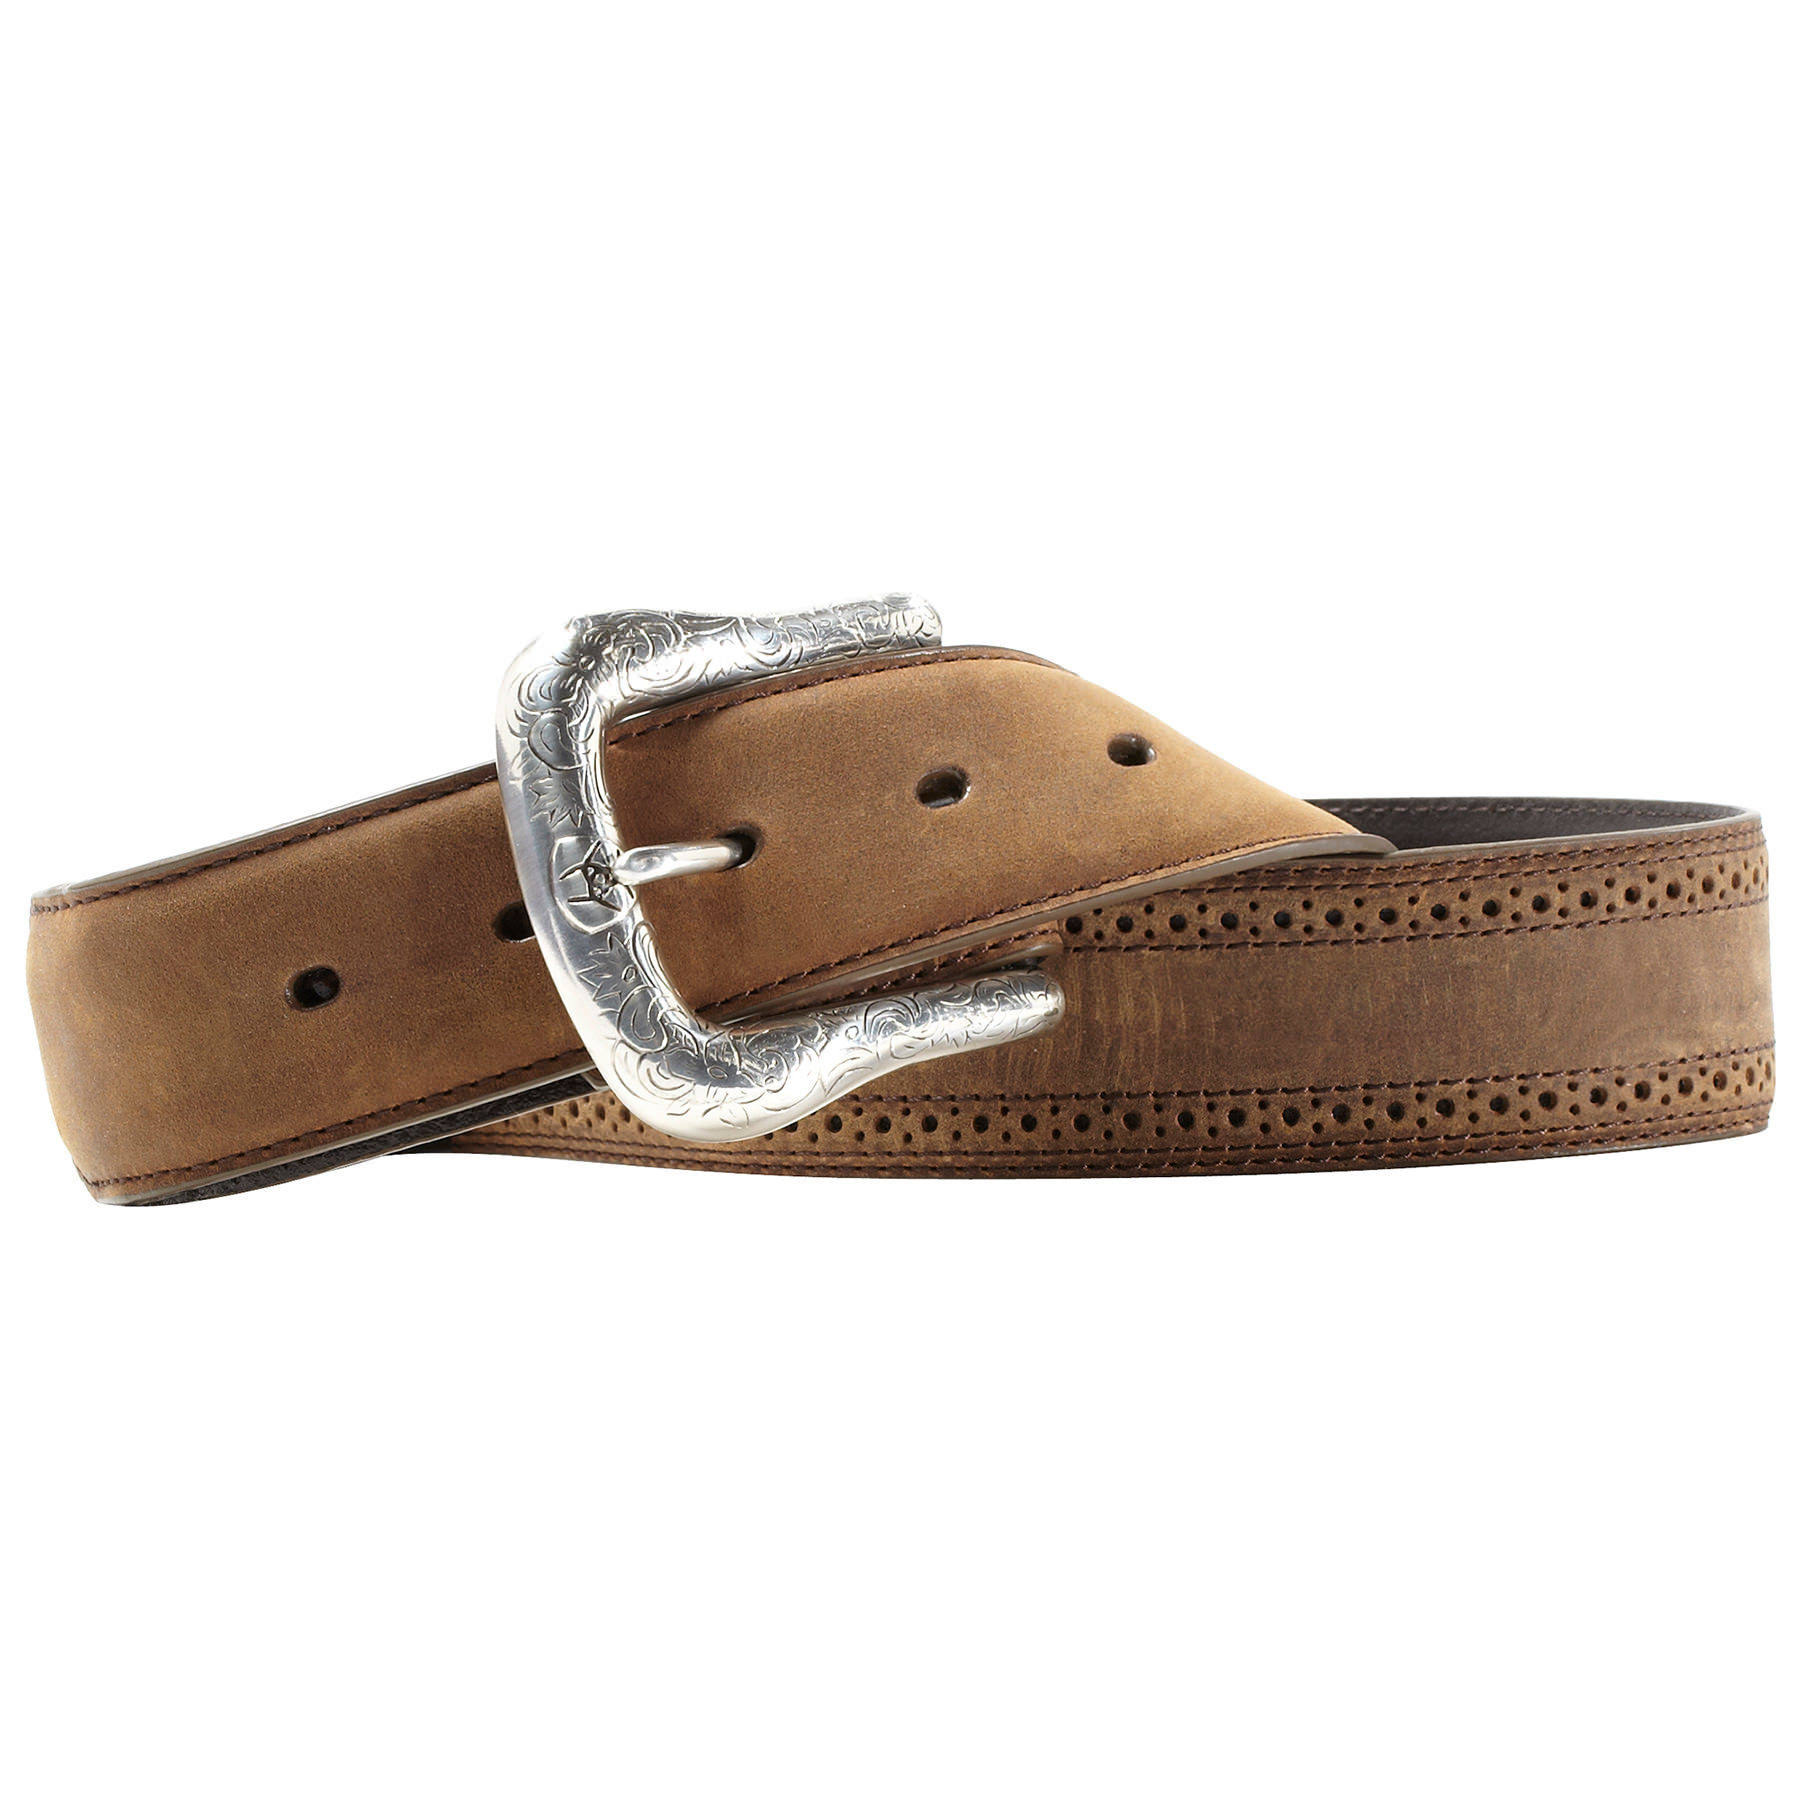 Ariat Men's Western Work Belt - Brown